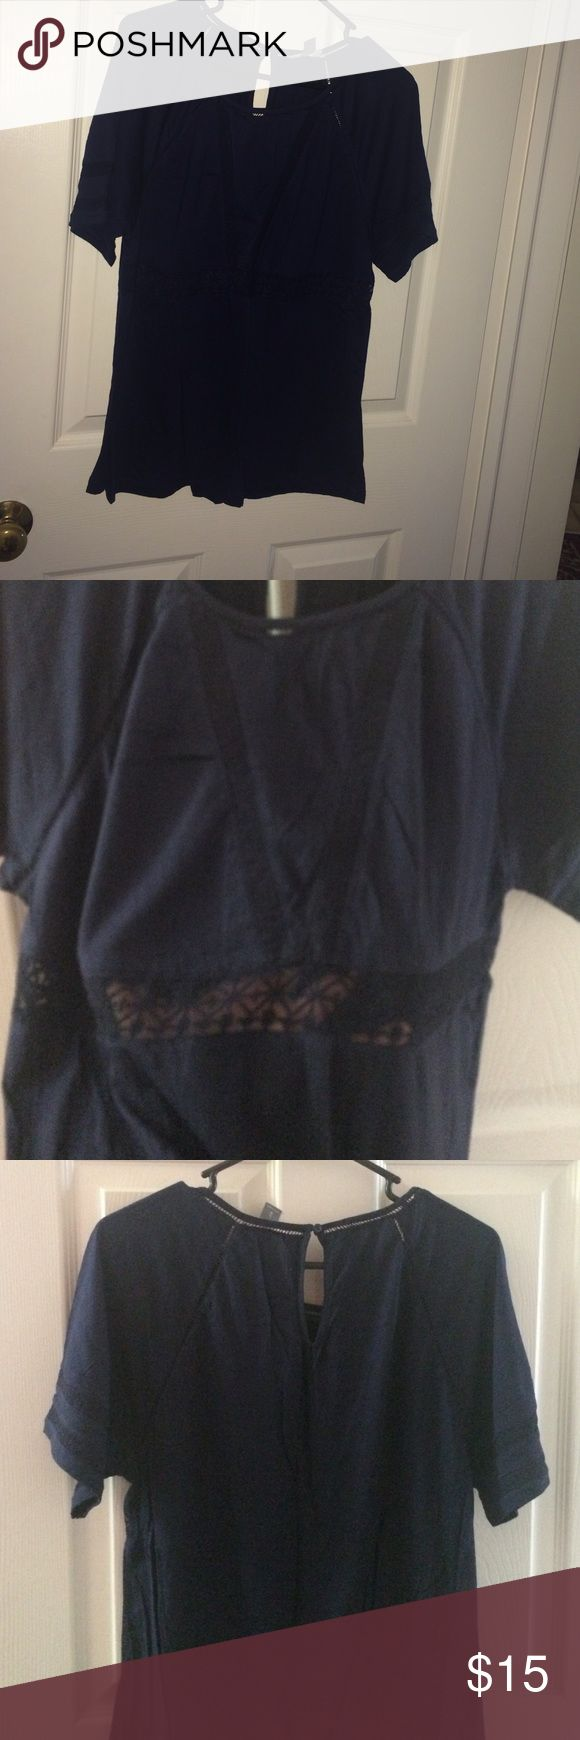 Old Navy Short Sleeve Top with lace details New top, only wore once. Navy blue with lace inset details on front & sleeves, keyhole back. Perfect for spring/summer with white bottoms. Old Navy Tops Tees - Short Sleeve